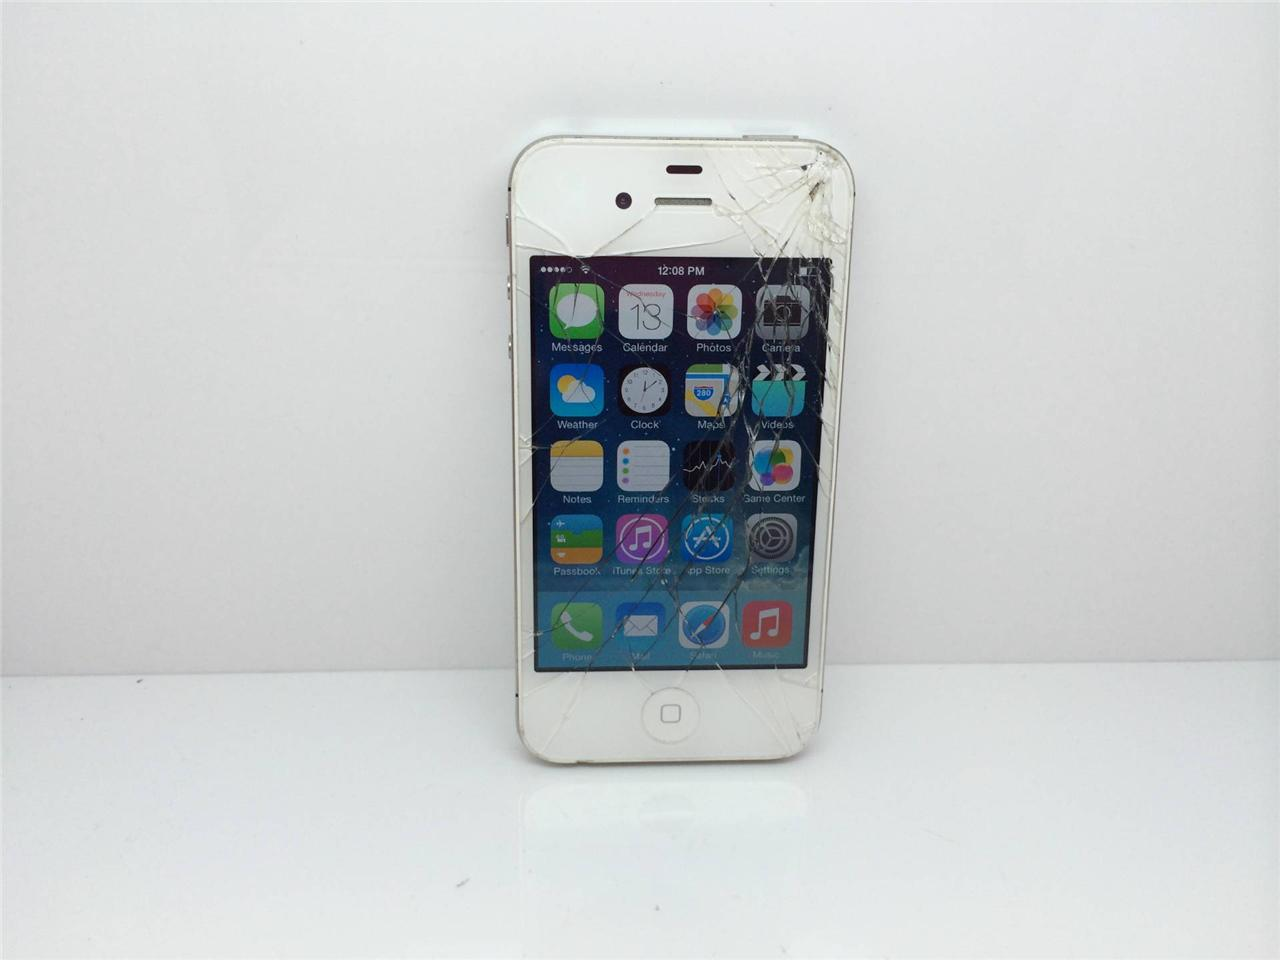 Details about Apple iPhone 4 - 8GB - White (Verizon) Smartphone dj024